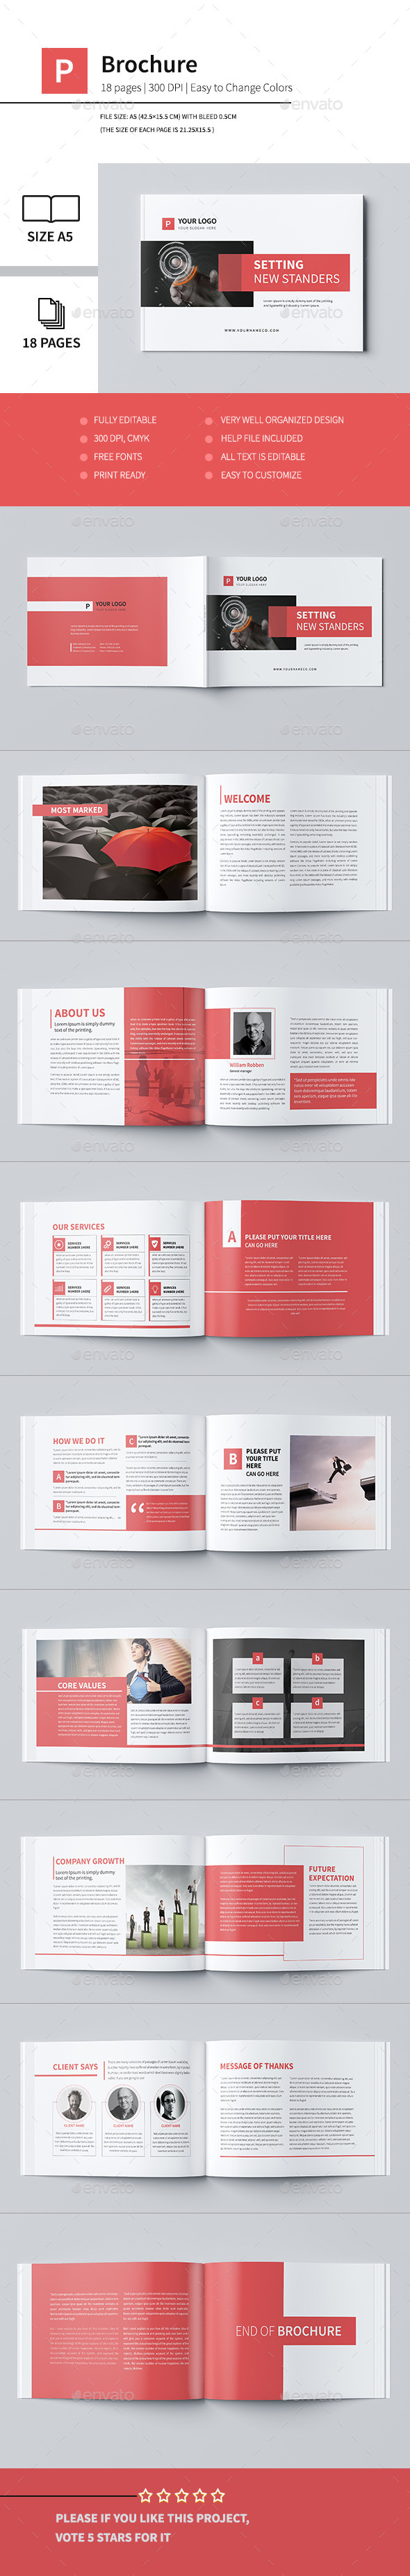 Minimal Business Brochure IV - Corporate Brochures